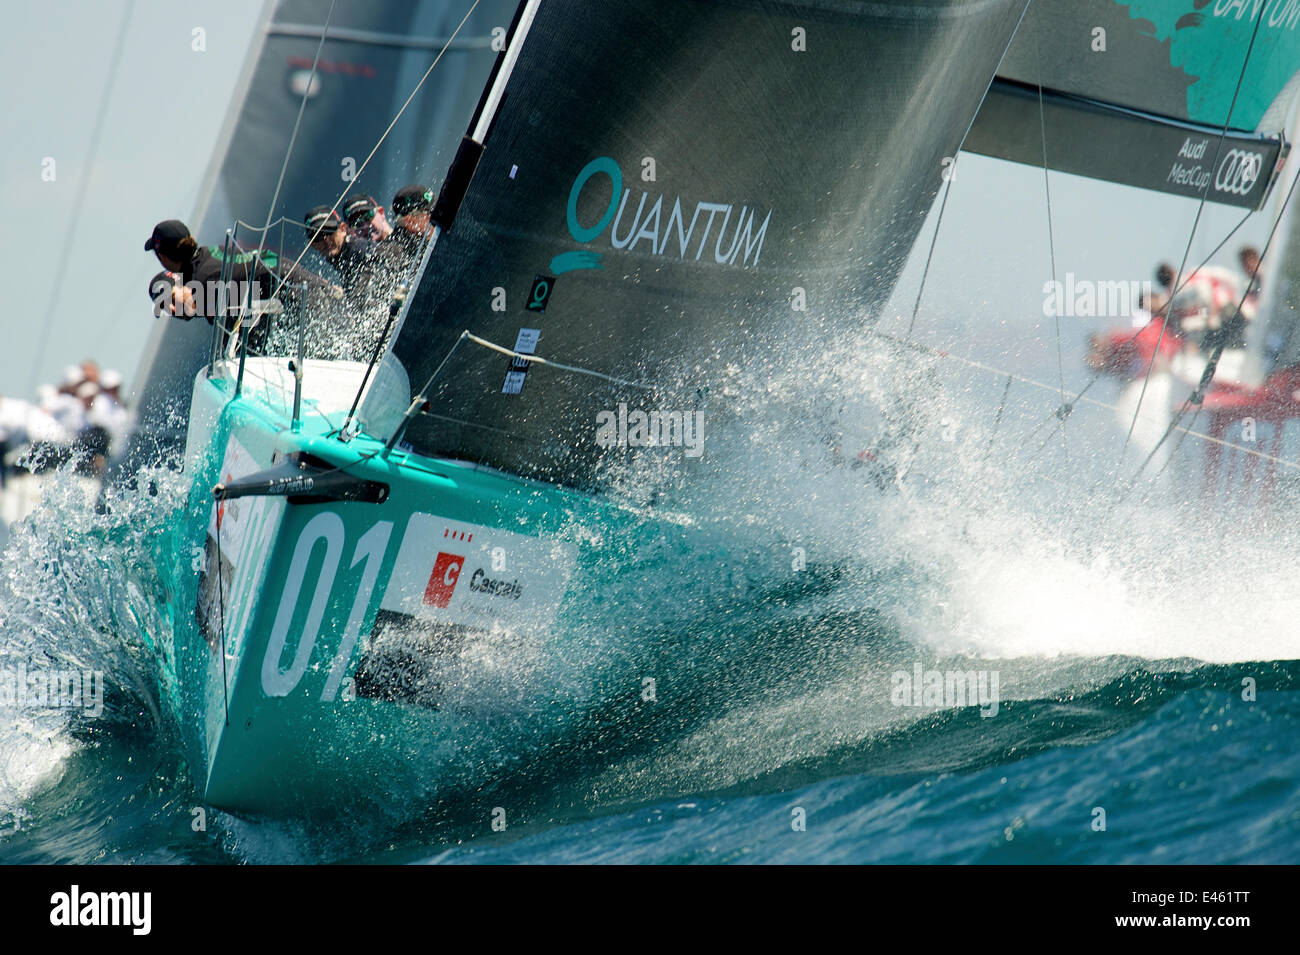 'Quantum Racing' leading the fleet race on day three of the 2011 Audi MedCup Circuit event in Casais, Portugal, Stock Photo